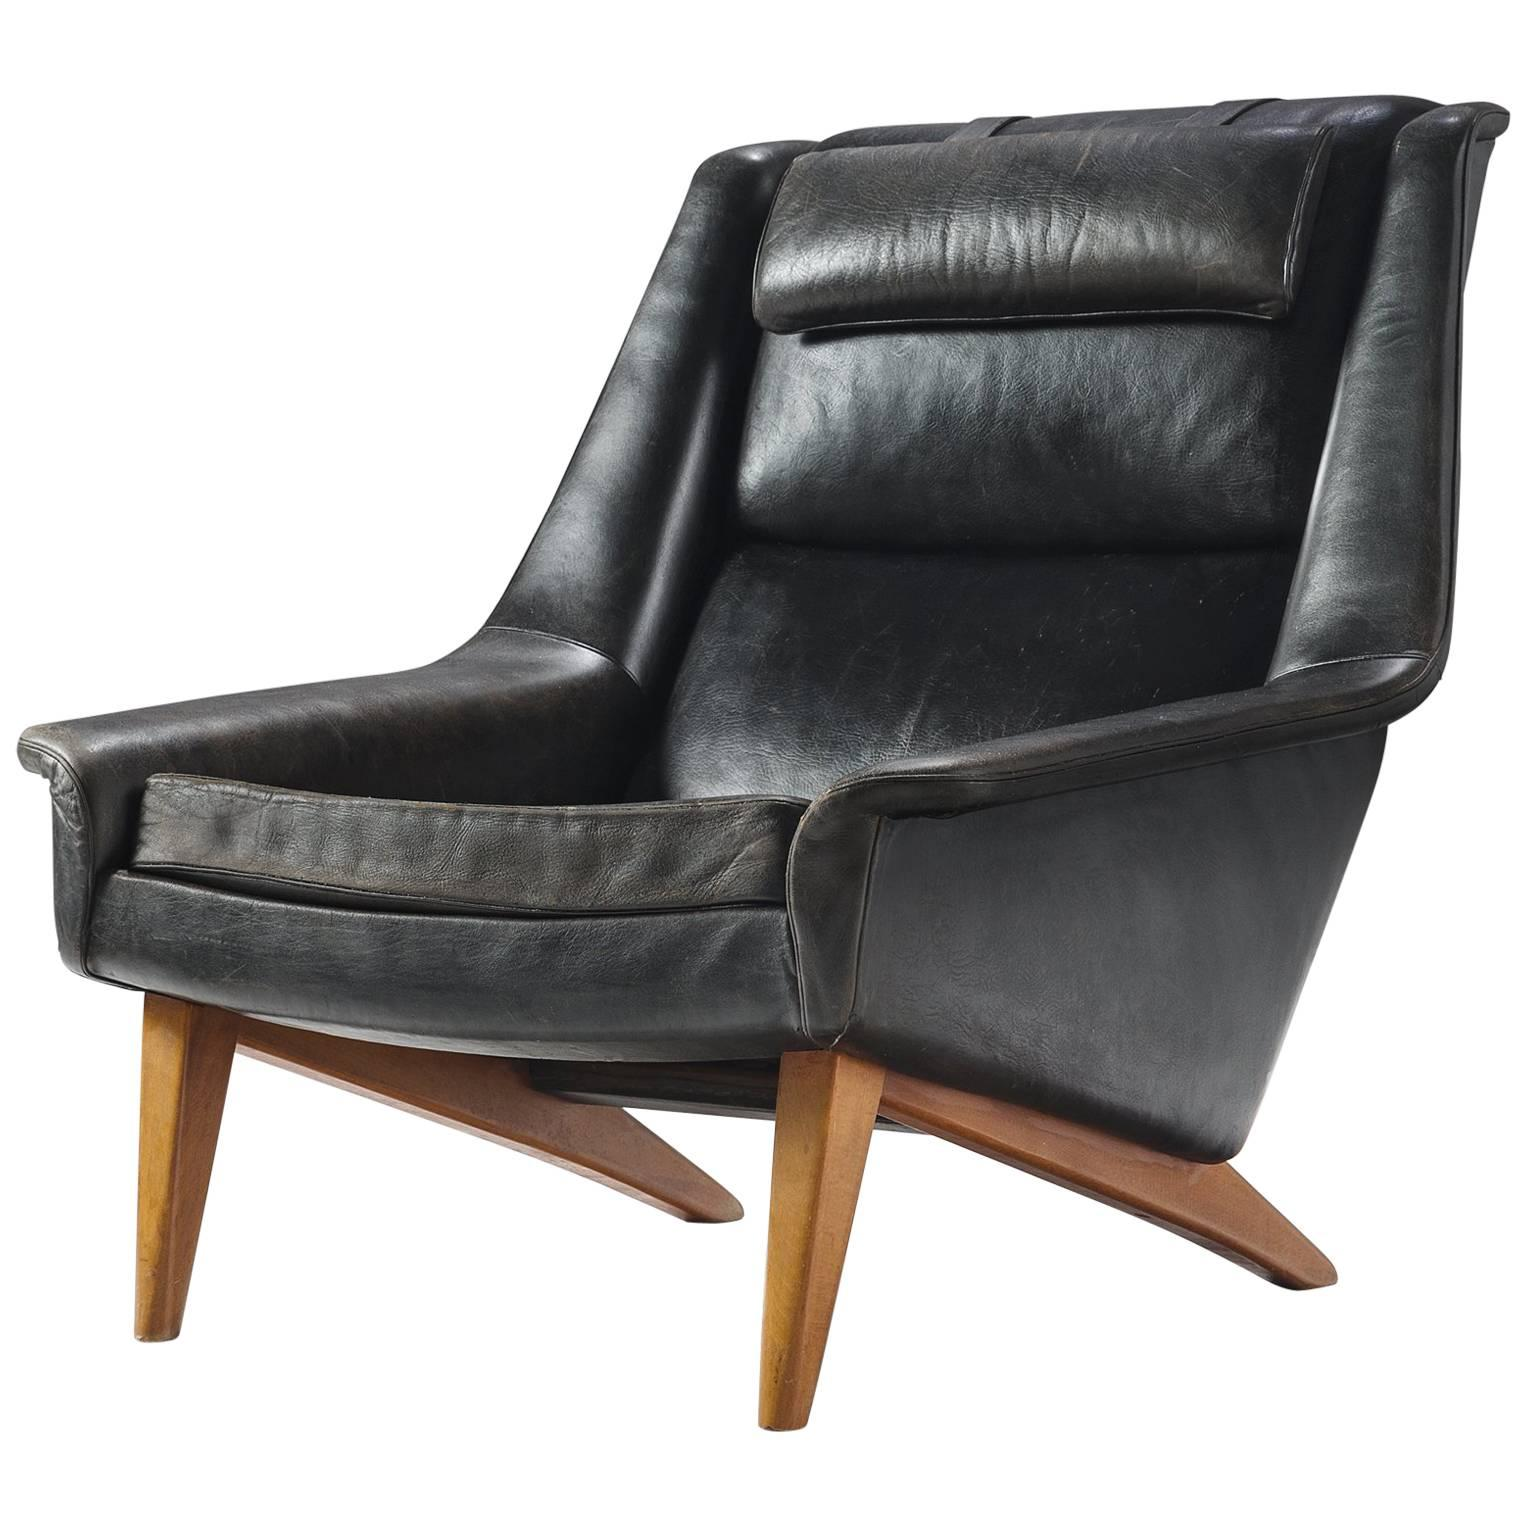 Black Leather Lounge Chair Folke Ohlsson Original Black Leather Lounge Chair For Fritz Hansen